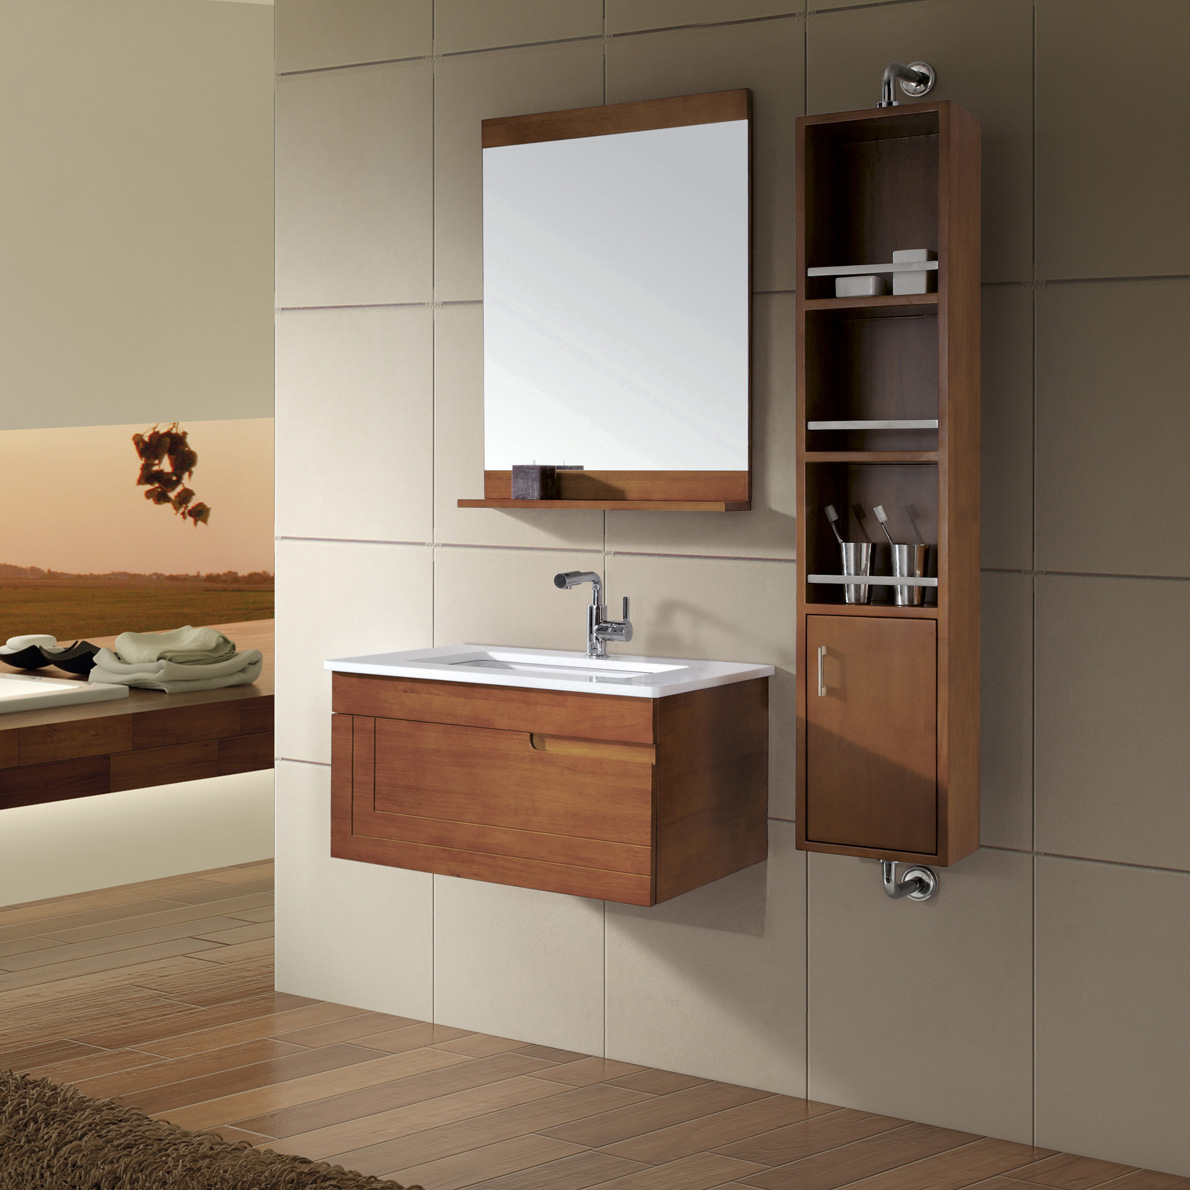 China bathroom cabinet vanity kl269 china bathroom for Bathroom storage furniture